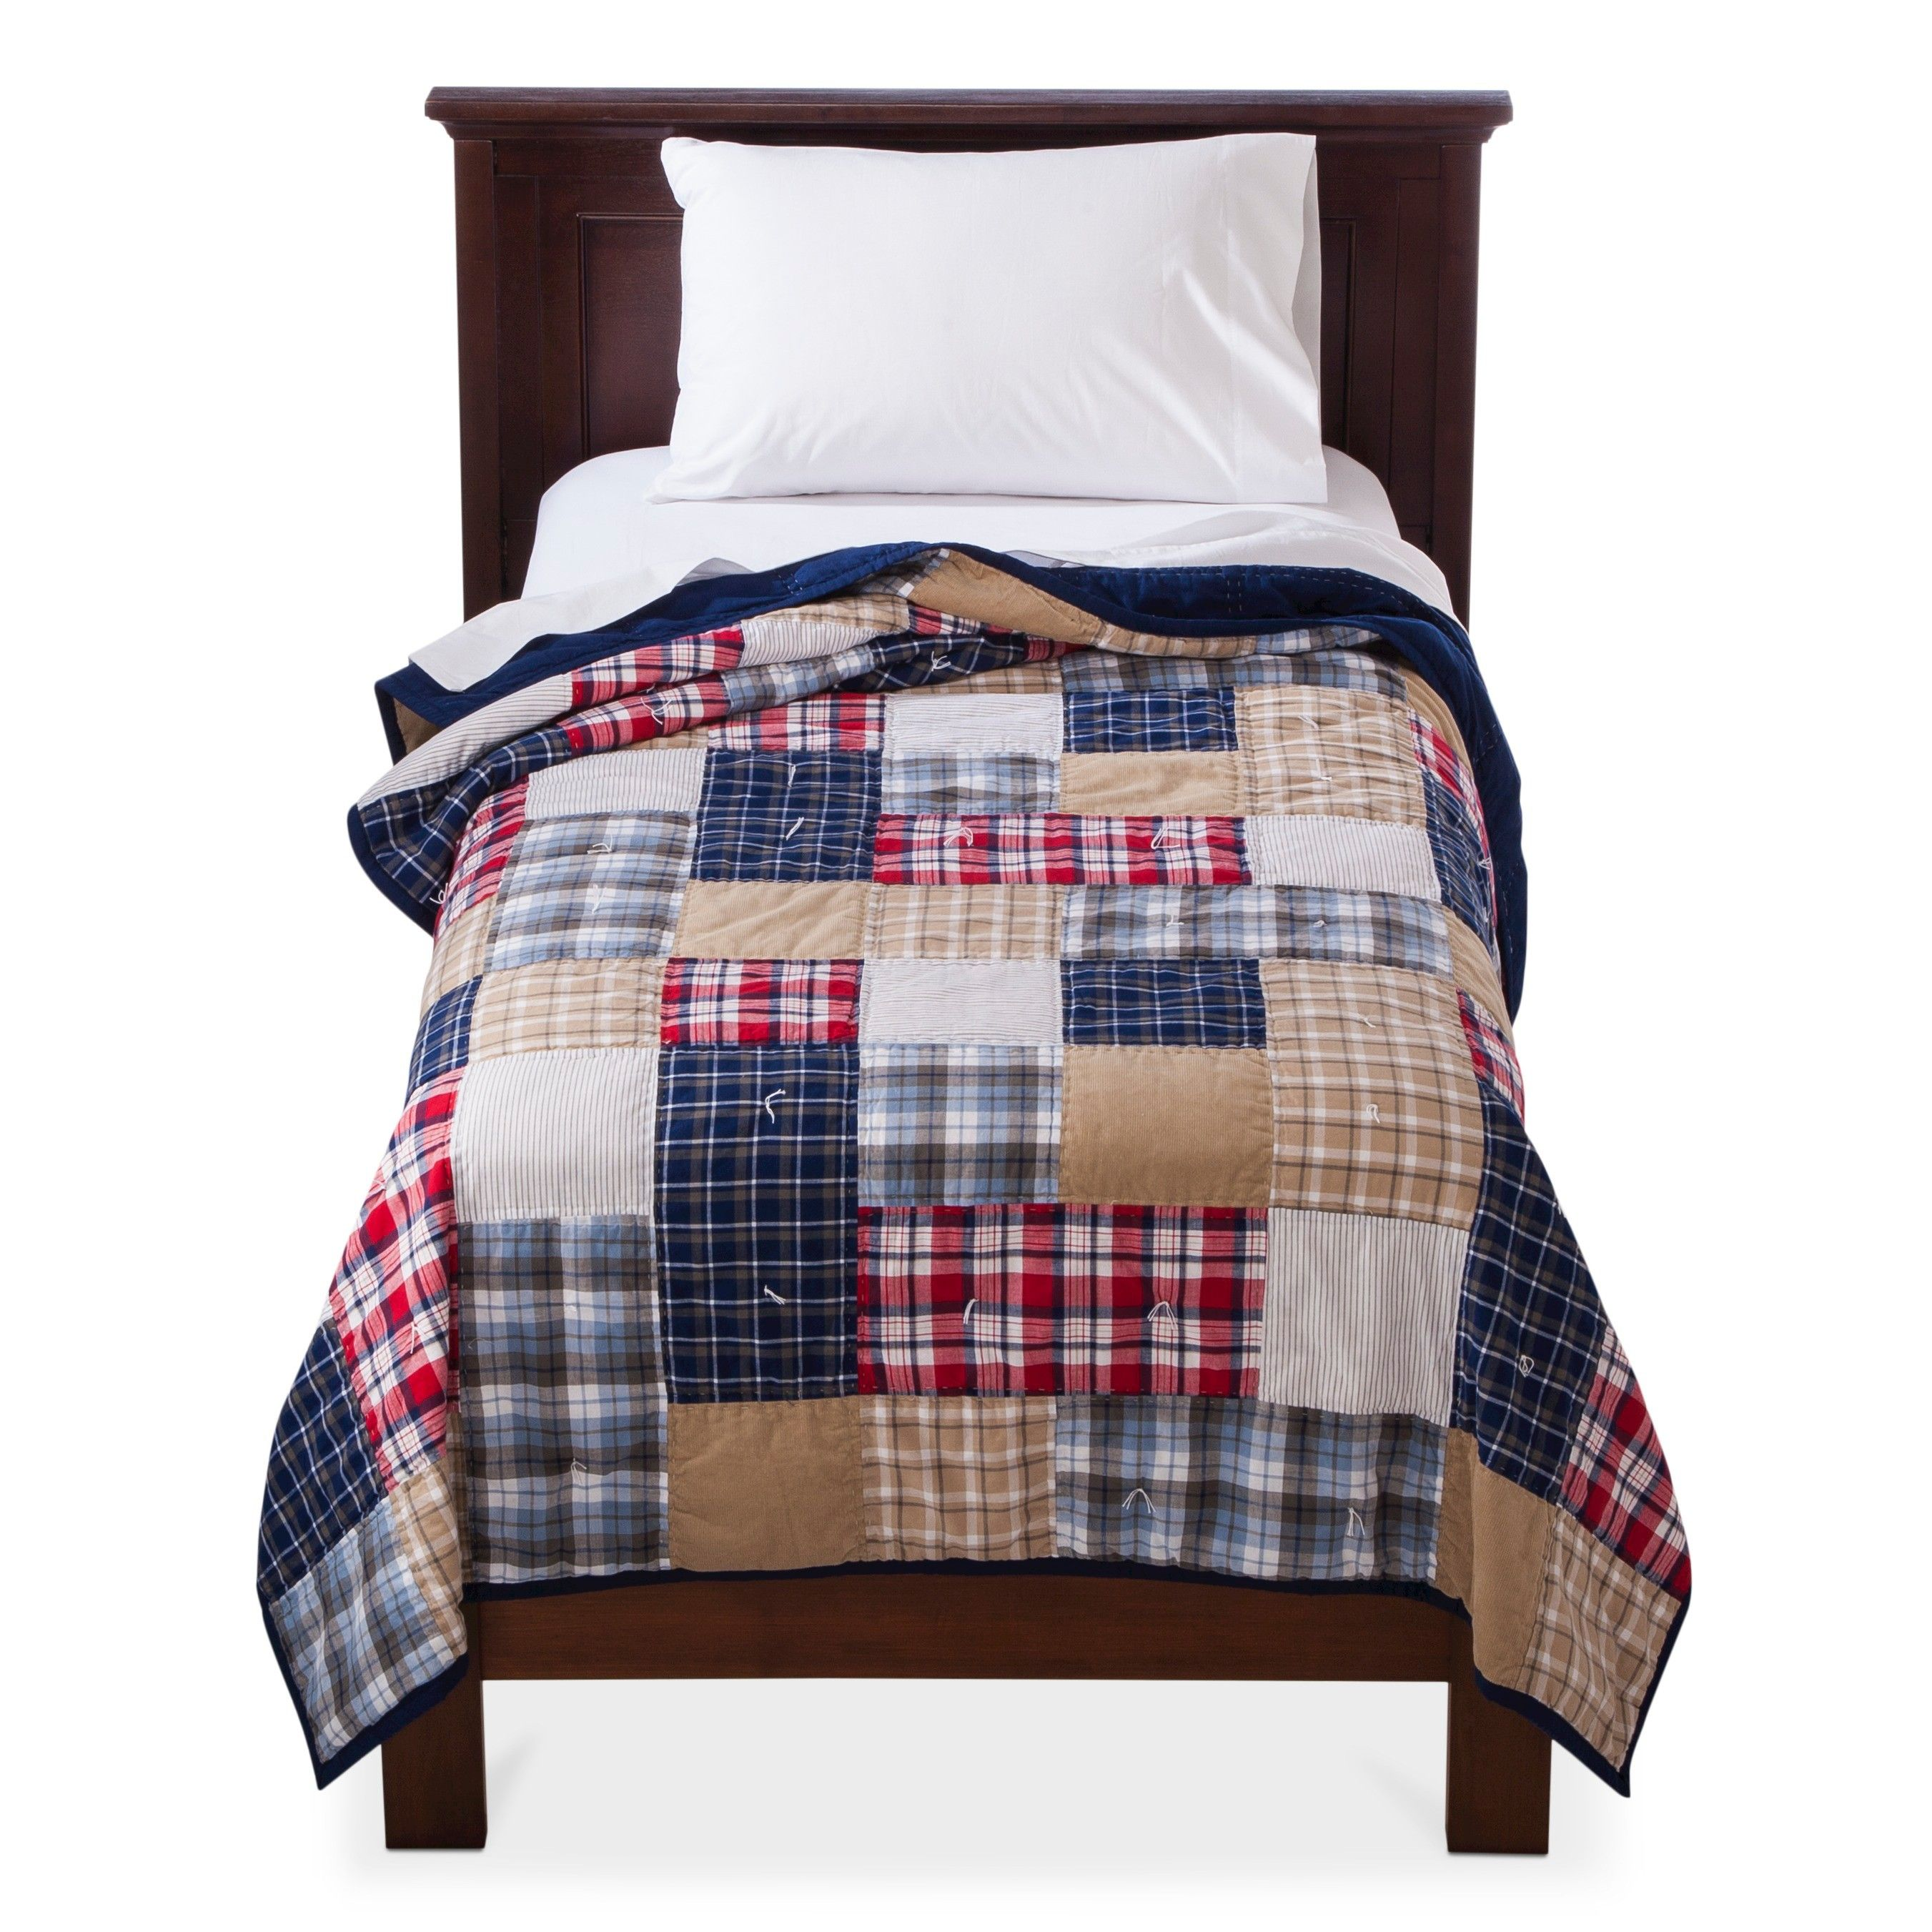 Circo Patchwork Quilt Boys Bedroom Decor Queen Bed Quilts Boys Bedding